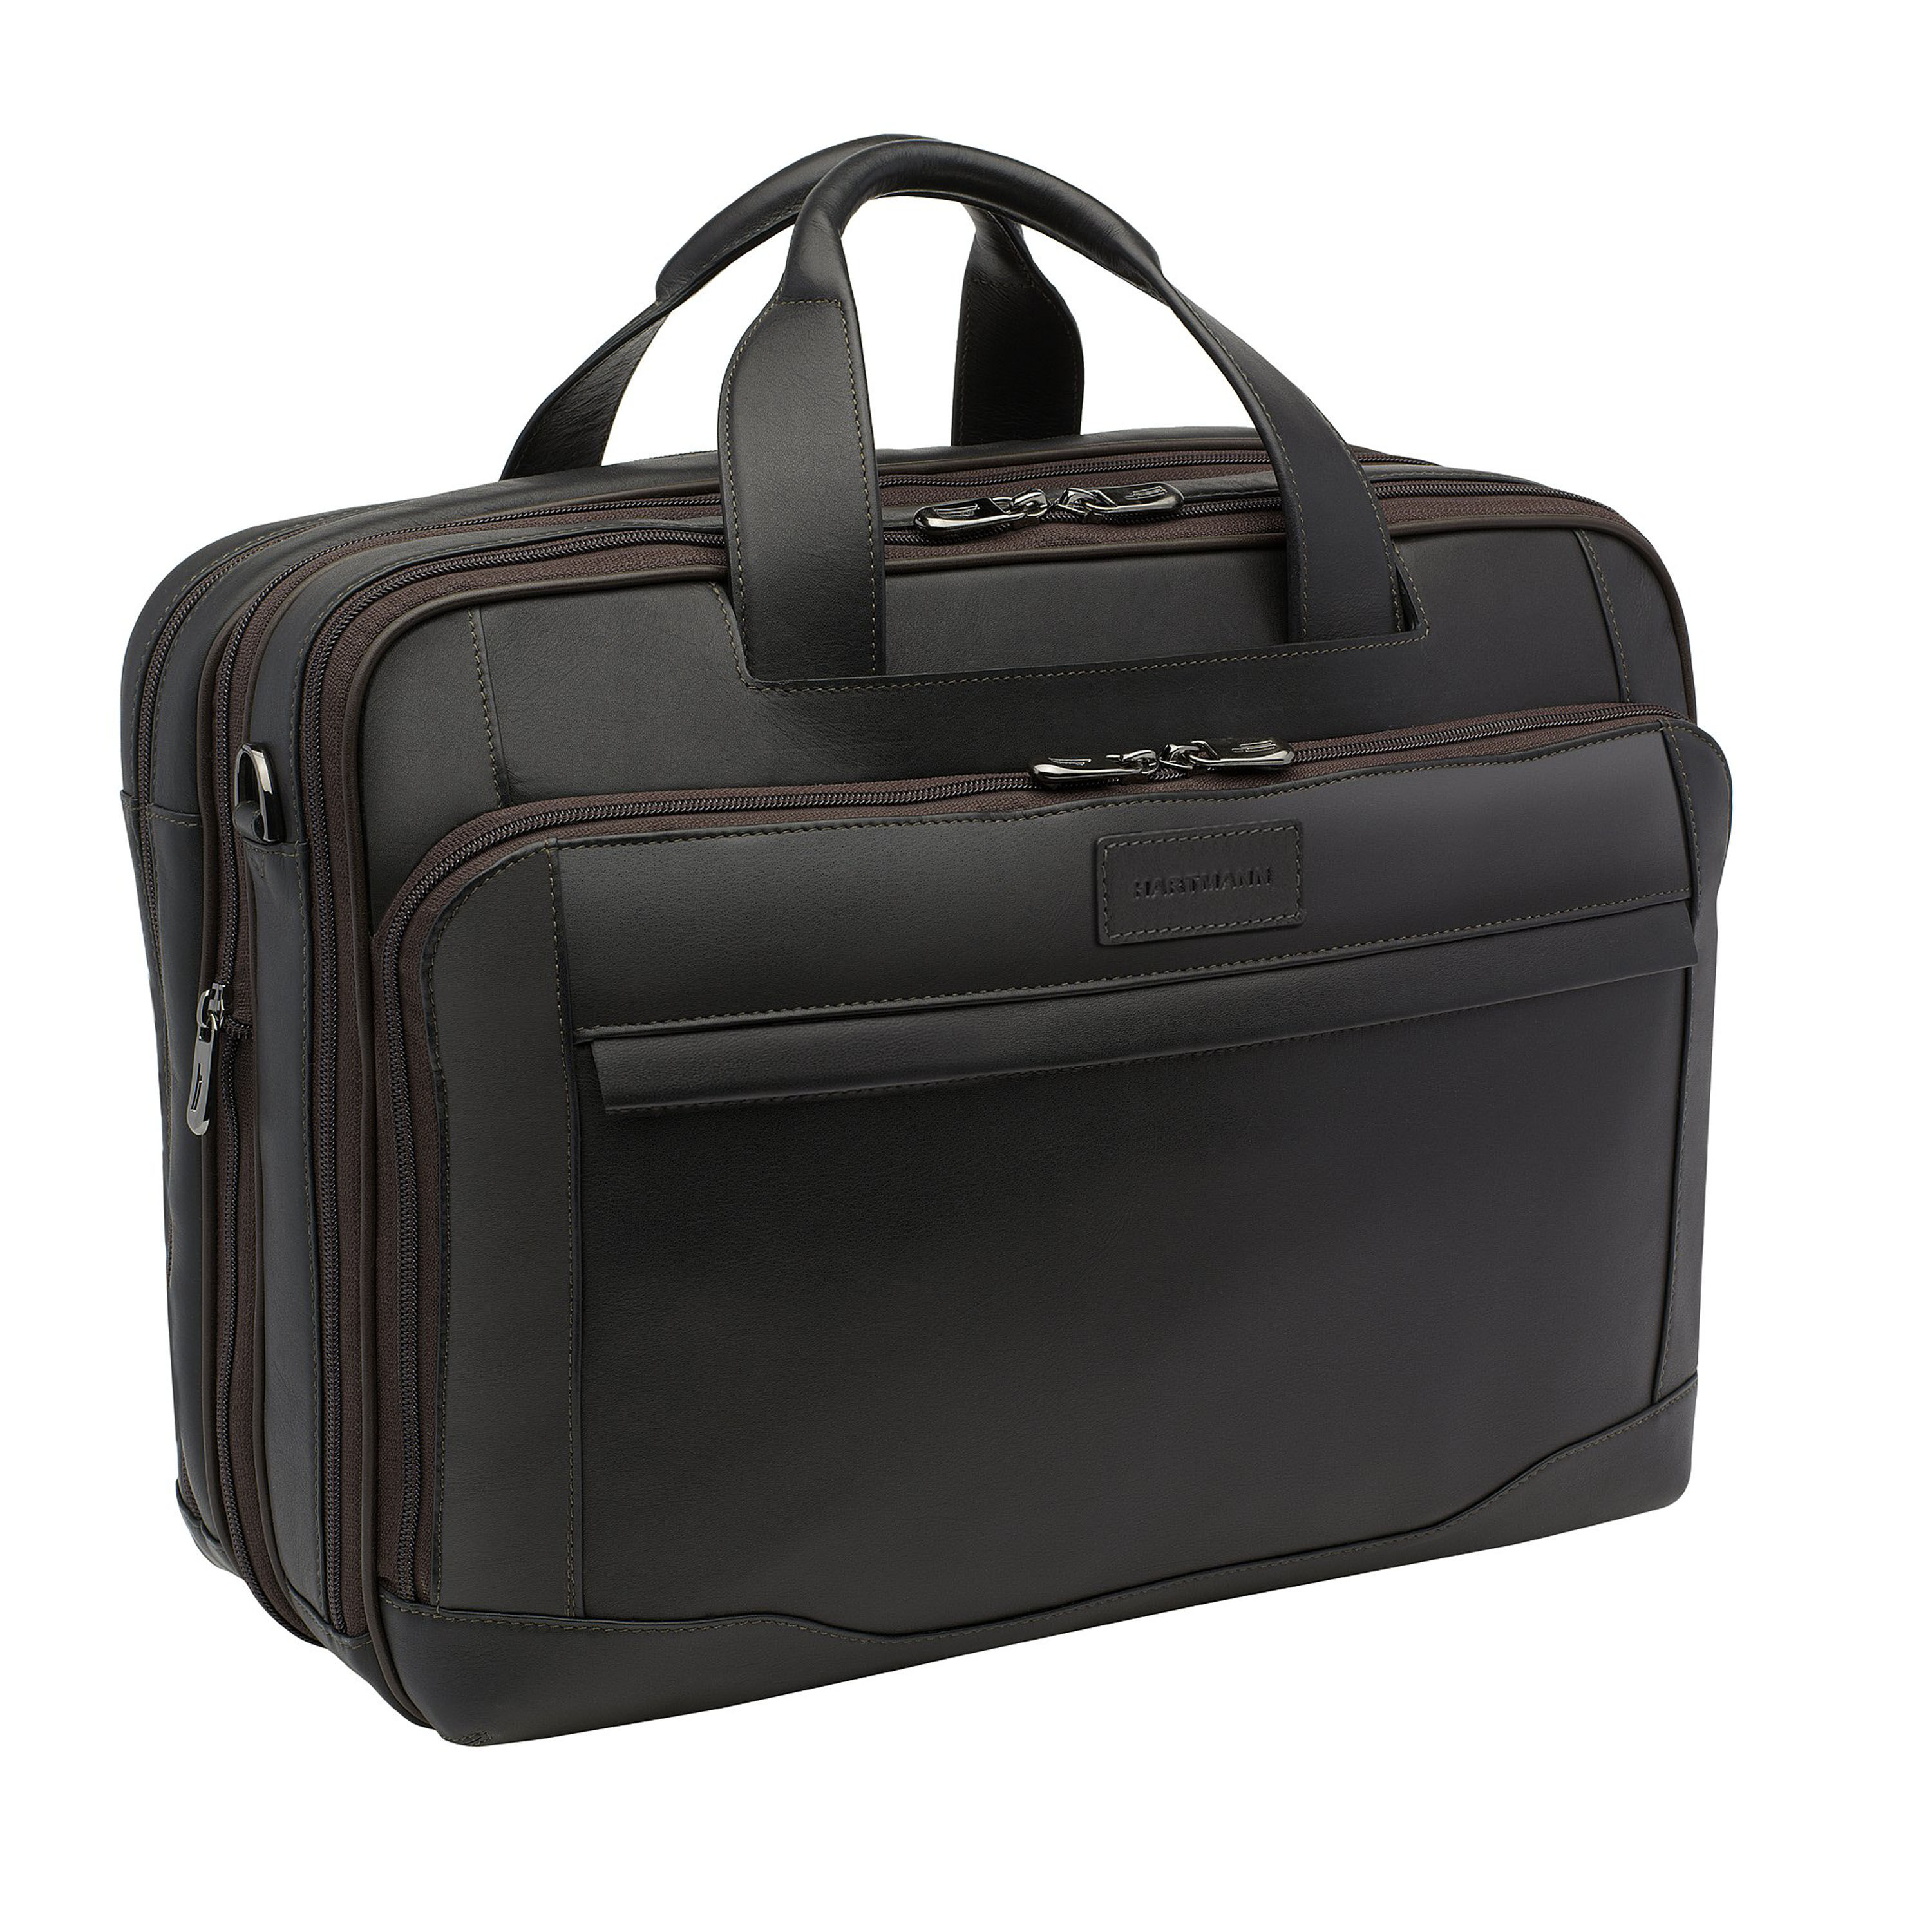 hartmann luggage, business cases, and leather accessories shop  hartmann aviator zipper briefcase expandable